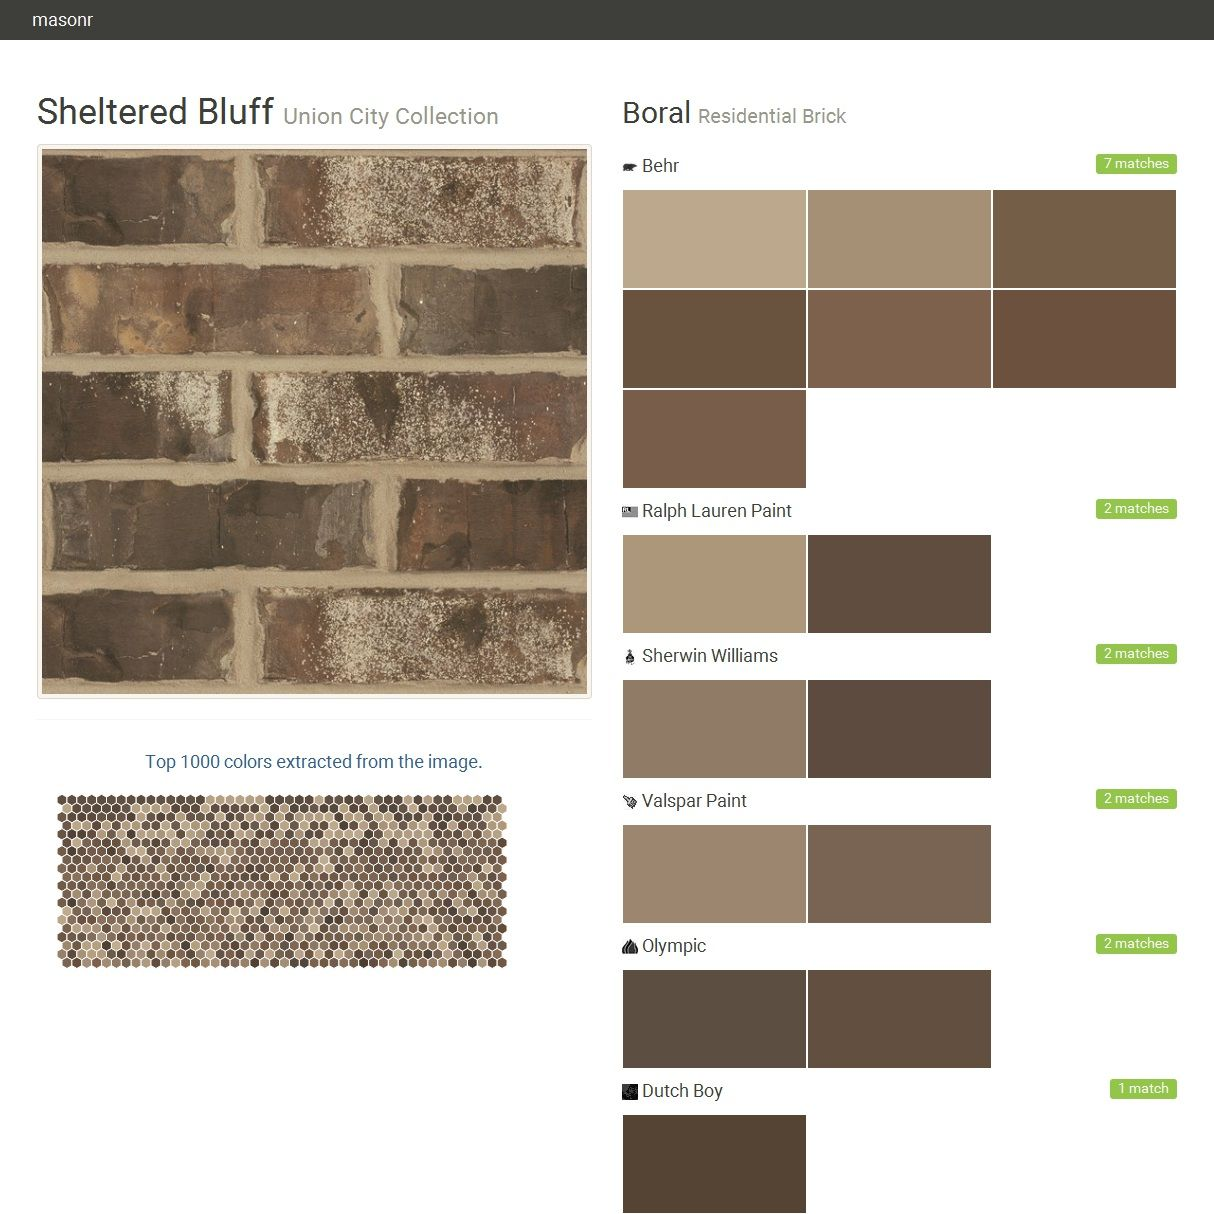 Sheltered Bluff. Union City Collection. Residential Brick. Boral. Behr.  Ralph Lauren